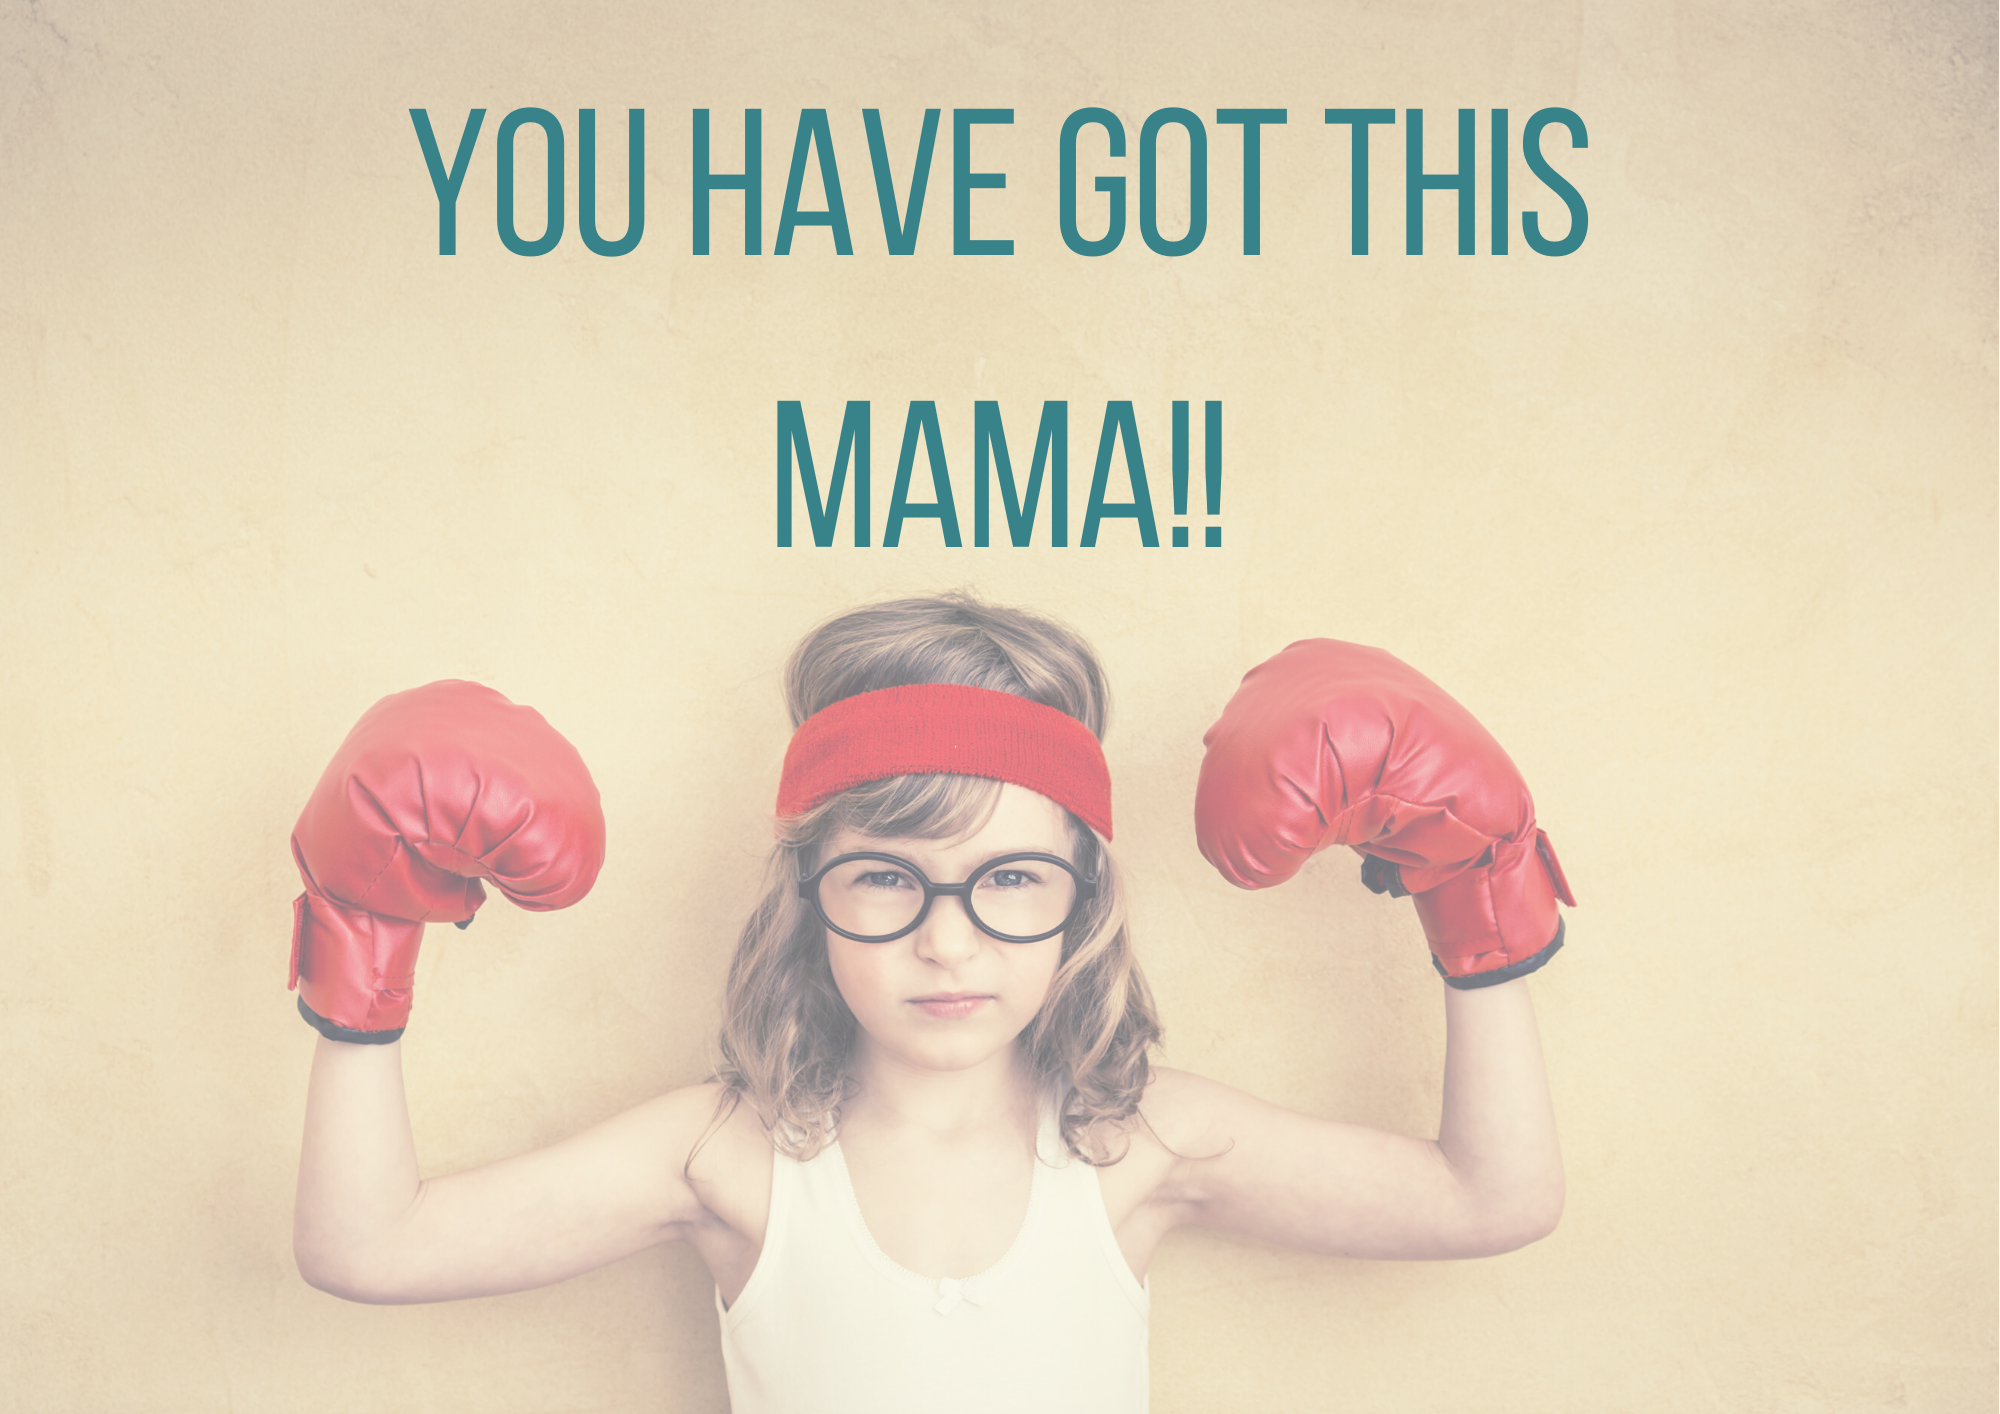 You have got this mama